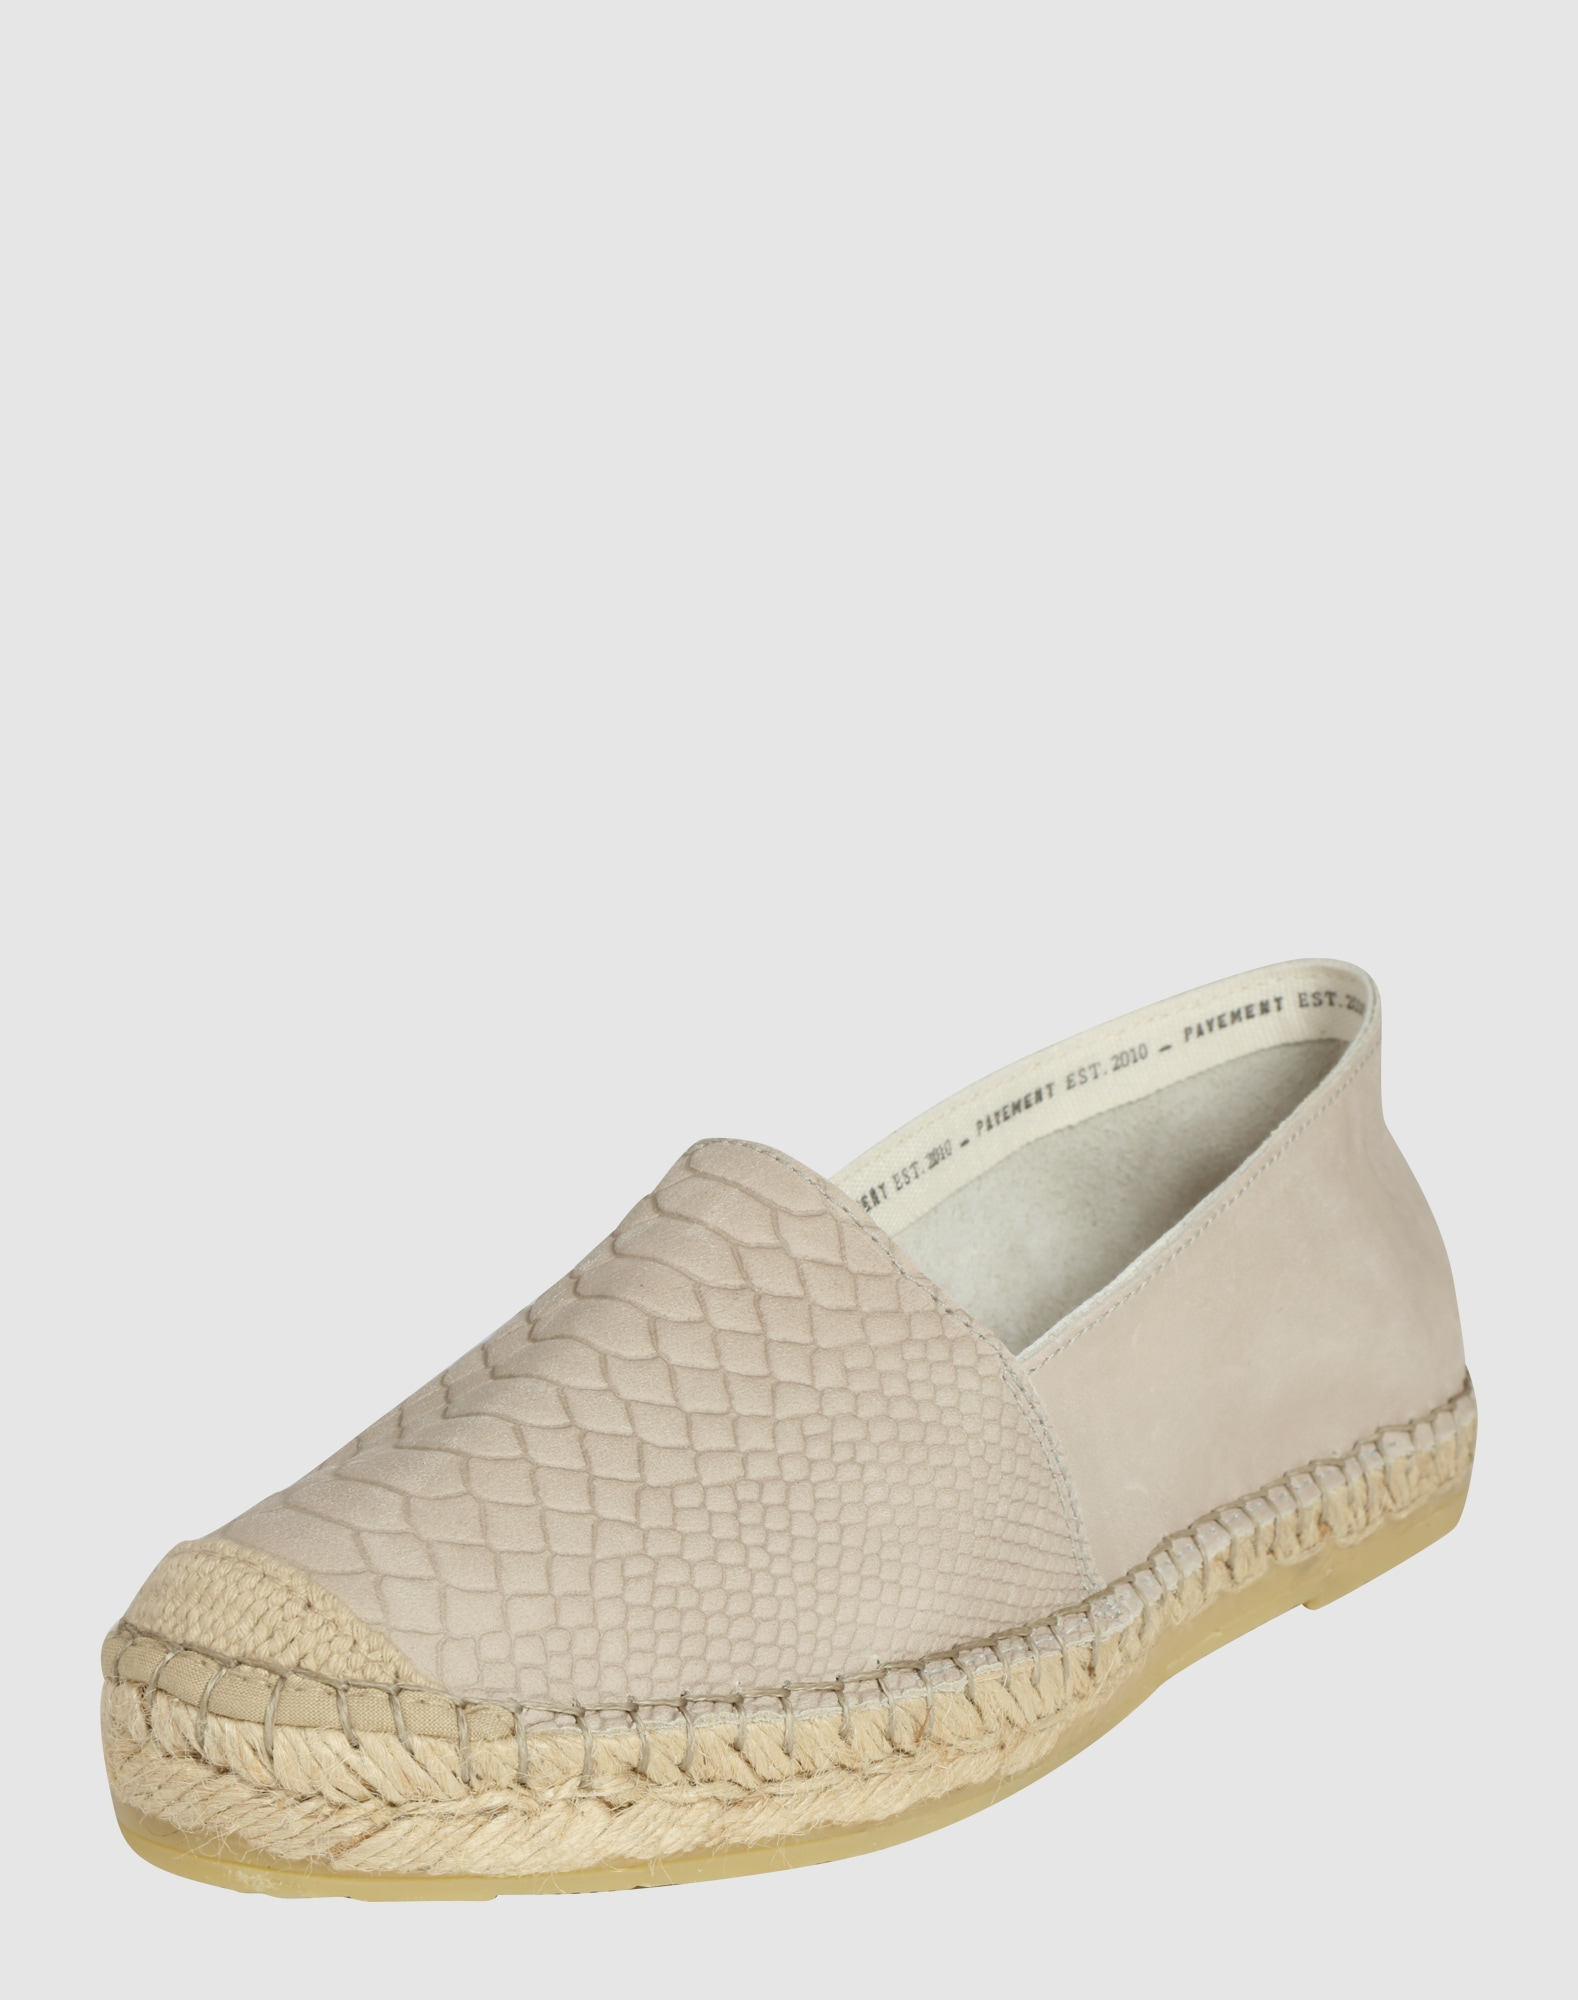 pavement leder espadrille mit snake pr gung 39 mia 39 in beige. Black Bedroom Furniture Sets. Home Design Ideas